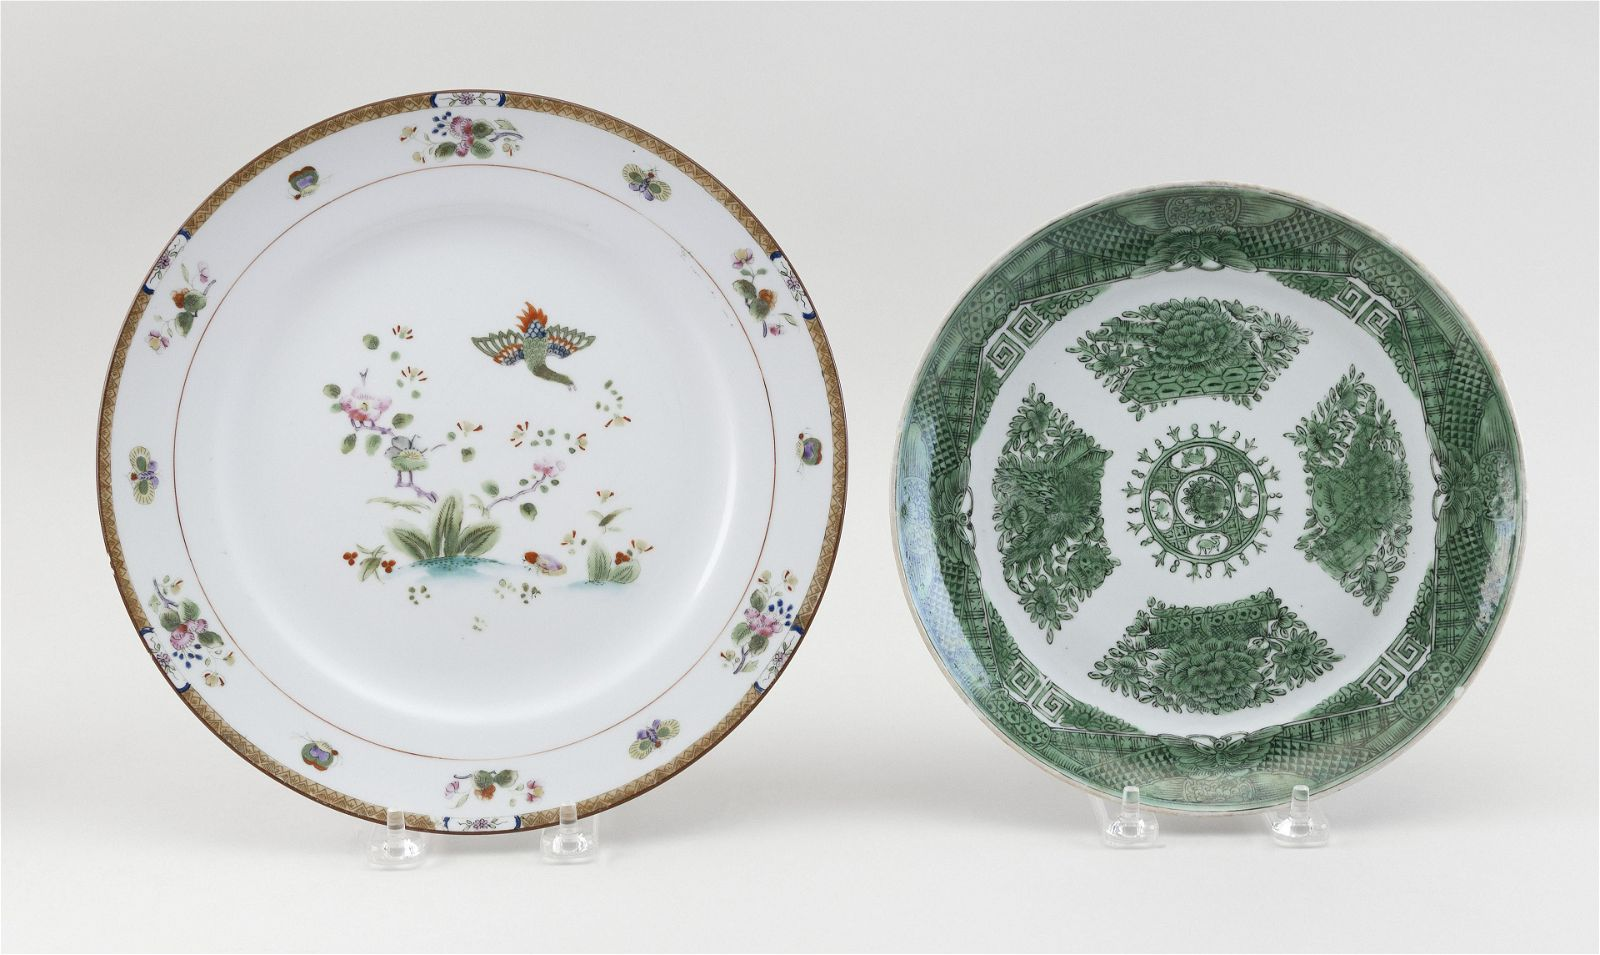 TWO PORCELAIN PLATES IN THE CHINESE TASTE Late